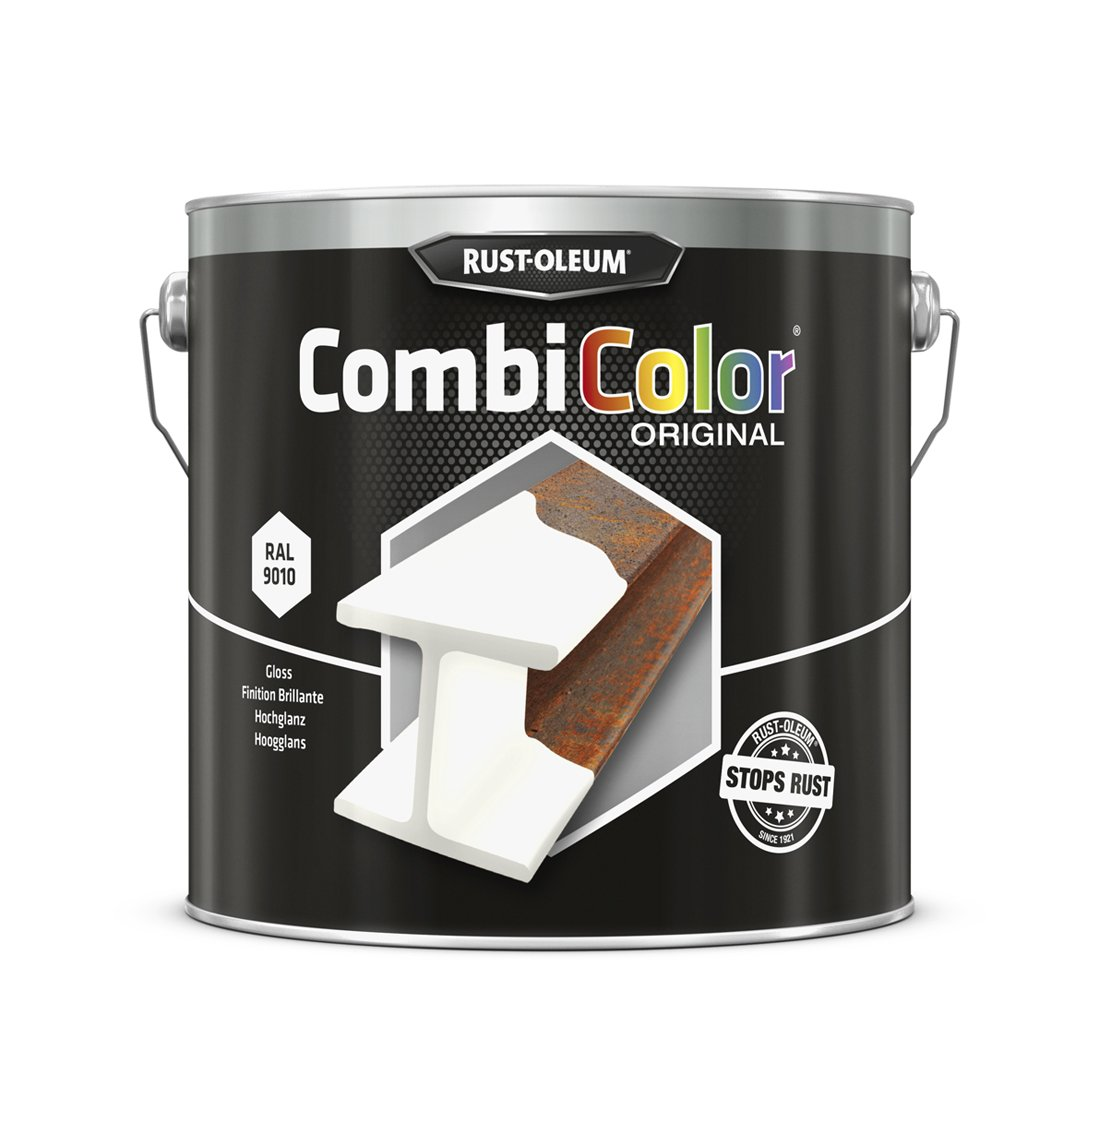 RUST-OLEUM 7392.2.5 Combicolor Original, Superior Metal Protection, Direct To Rust, White-RAL 9010